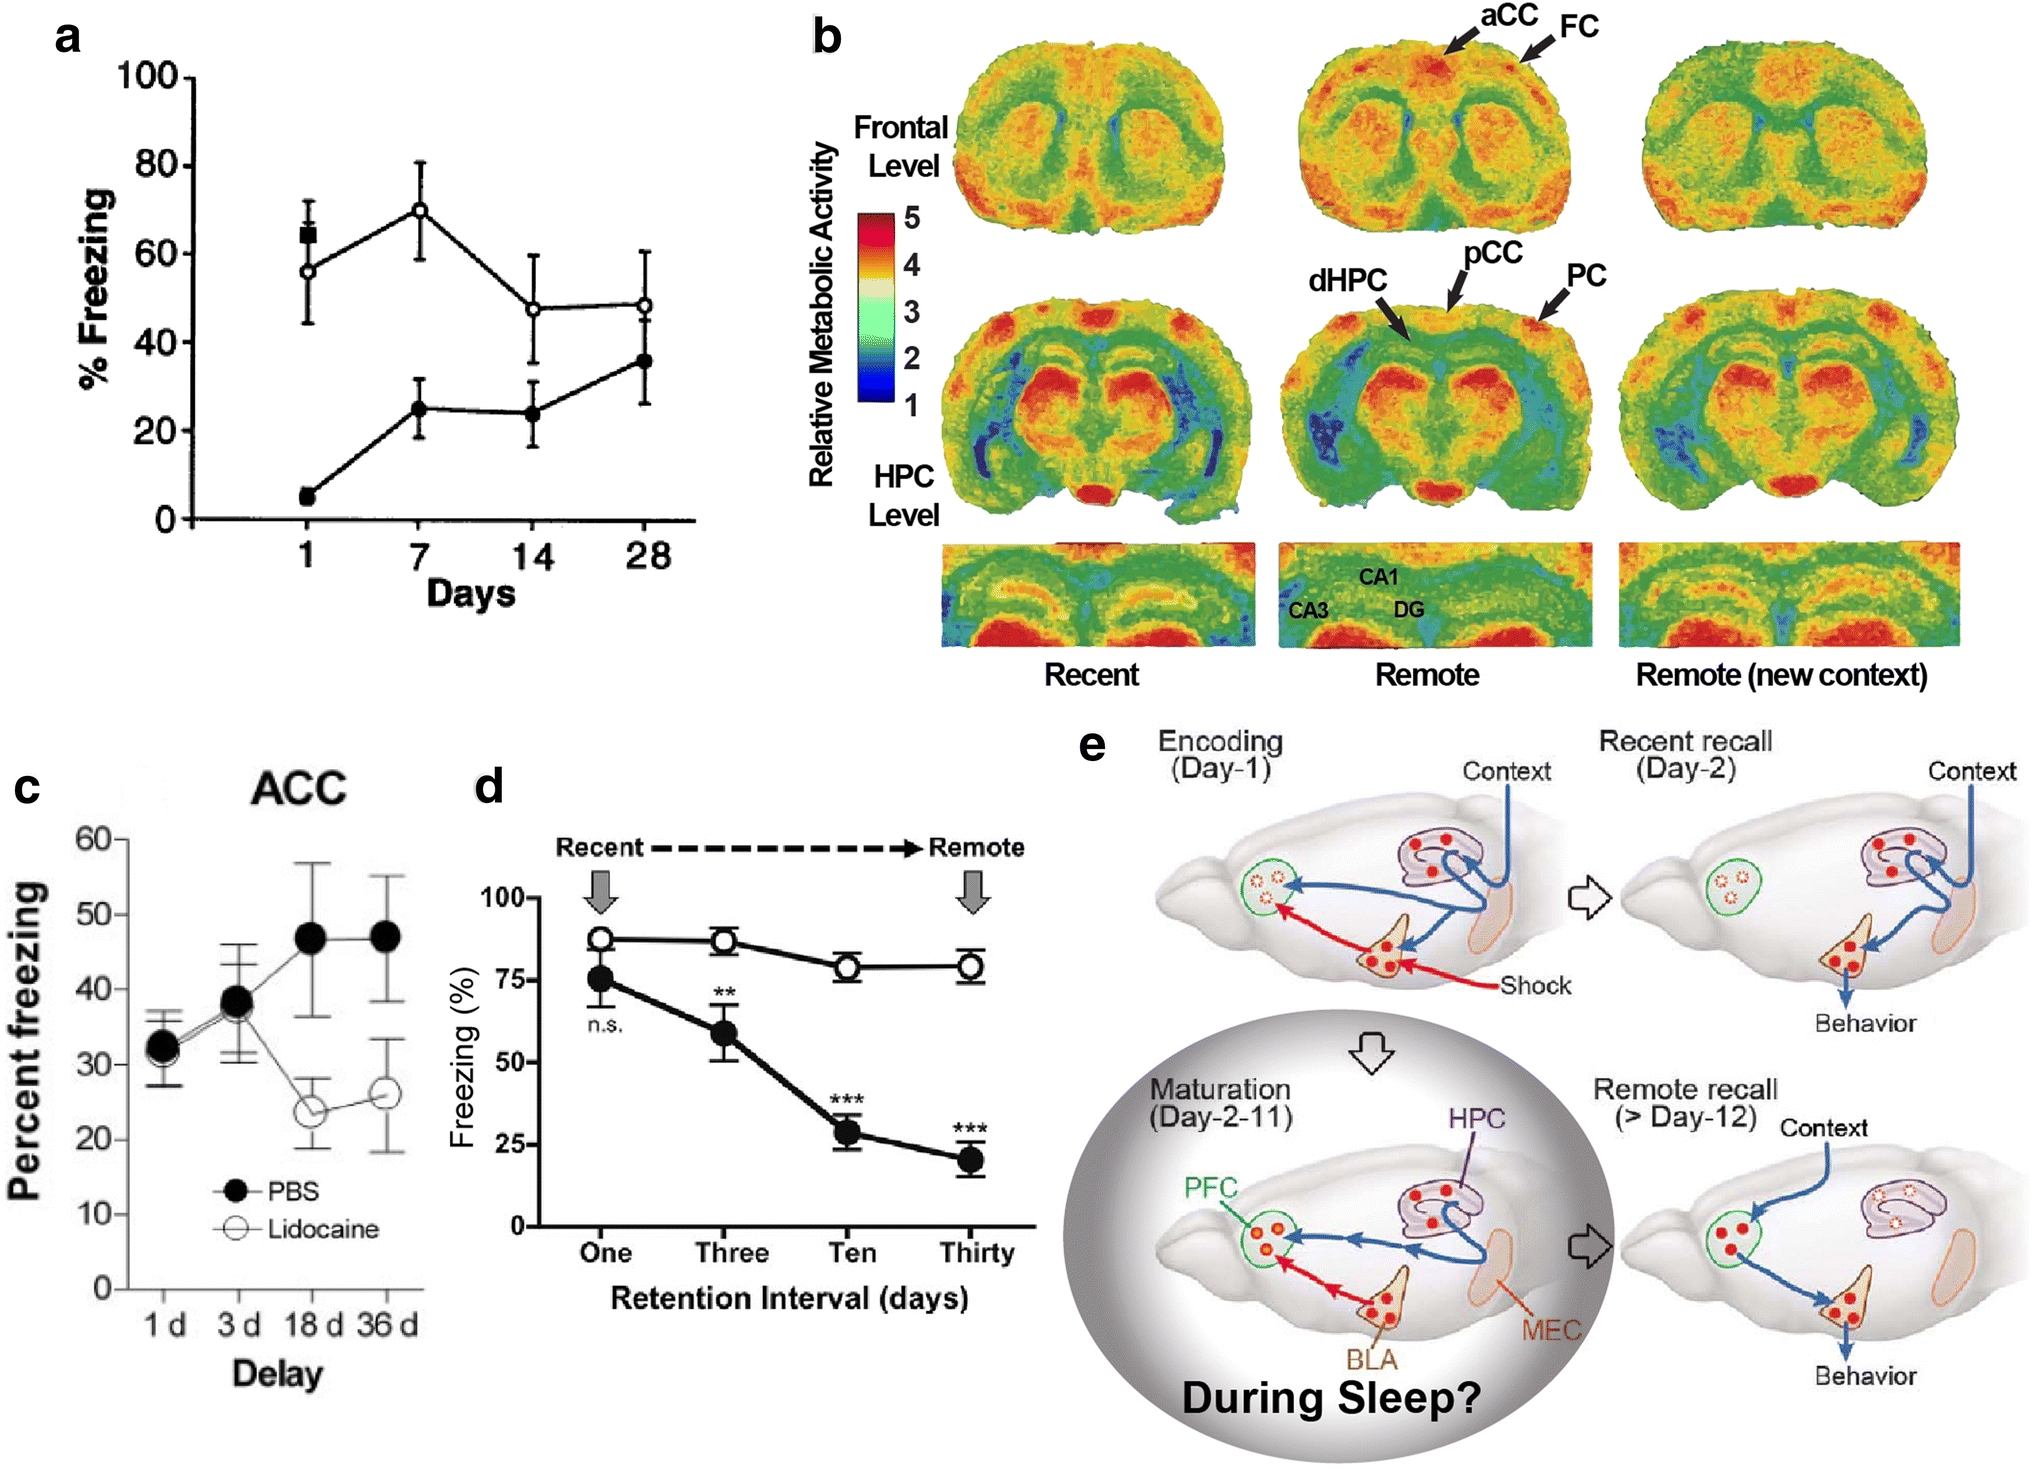 Memory Corticalization Triggered By Rem Sleep Mechanisms Of Md6 Wiring Diagram Open Image In New Window